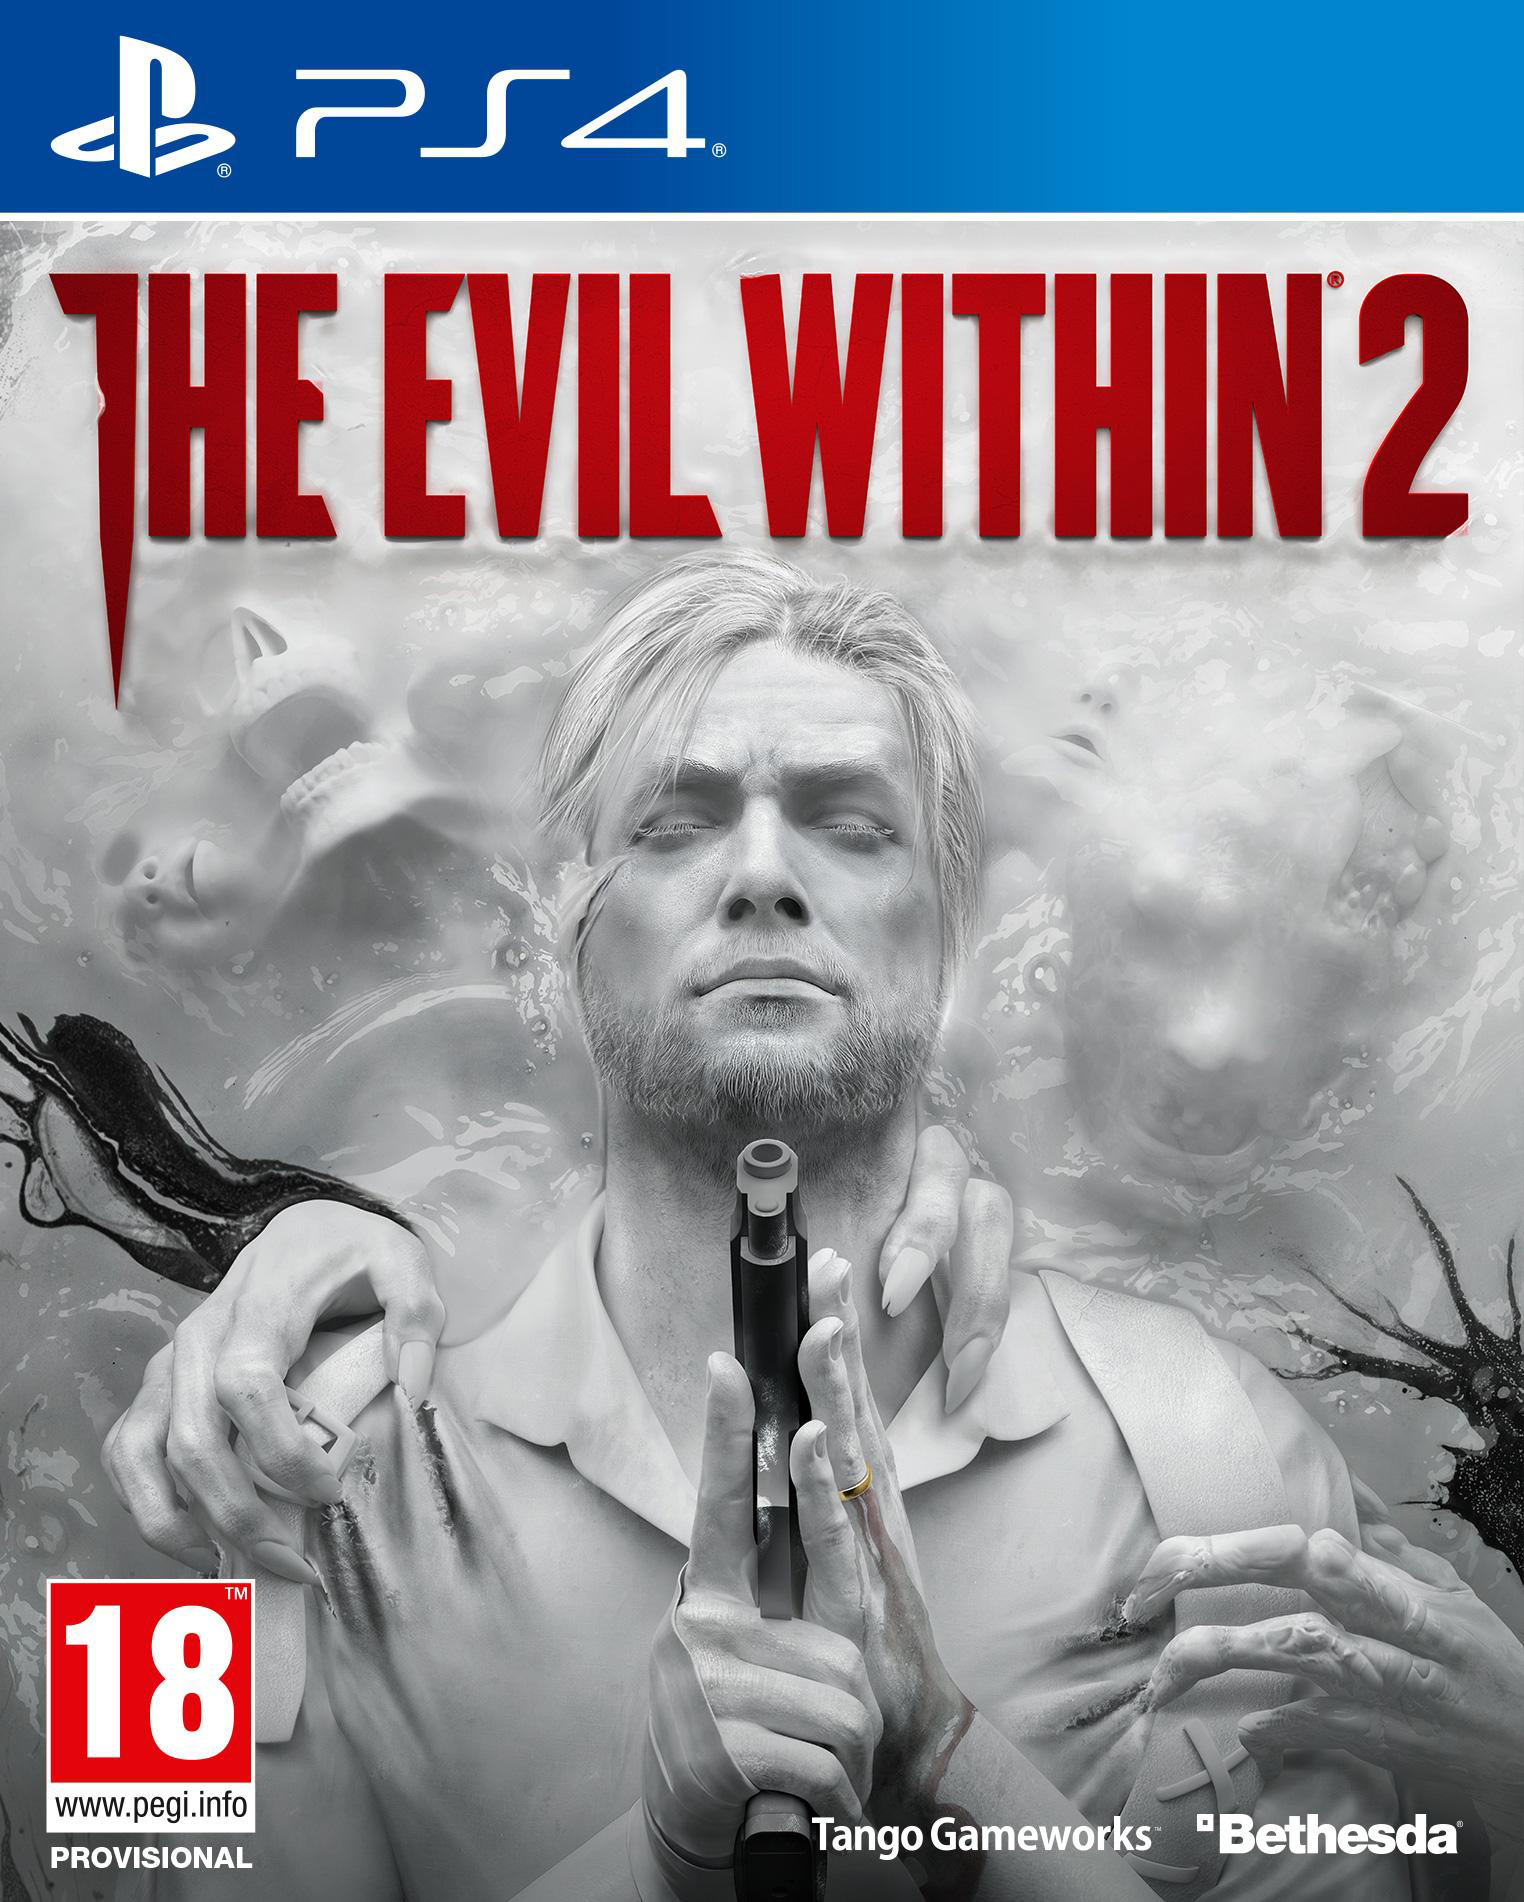 The Evil Within 2 [PS4] 5.05 / 6.72 / 7.02 [EUR] (2017) [Русский] (v1.04)